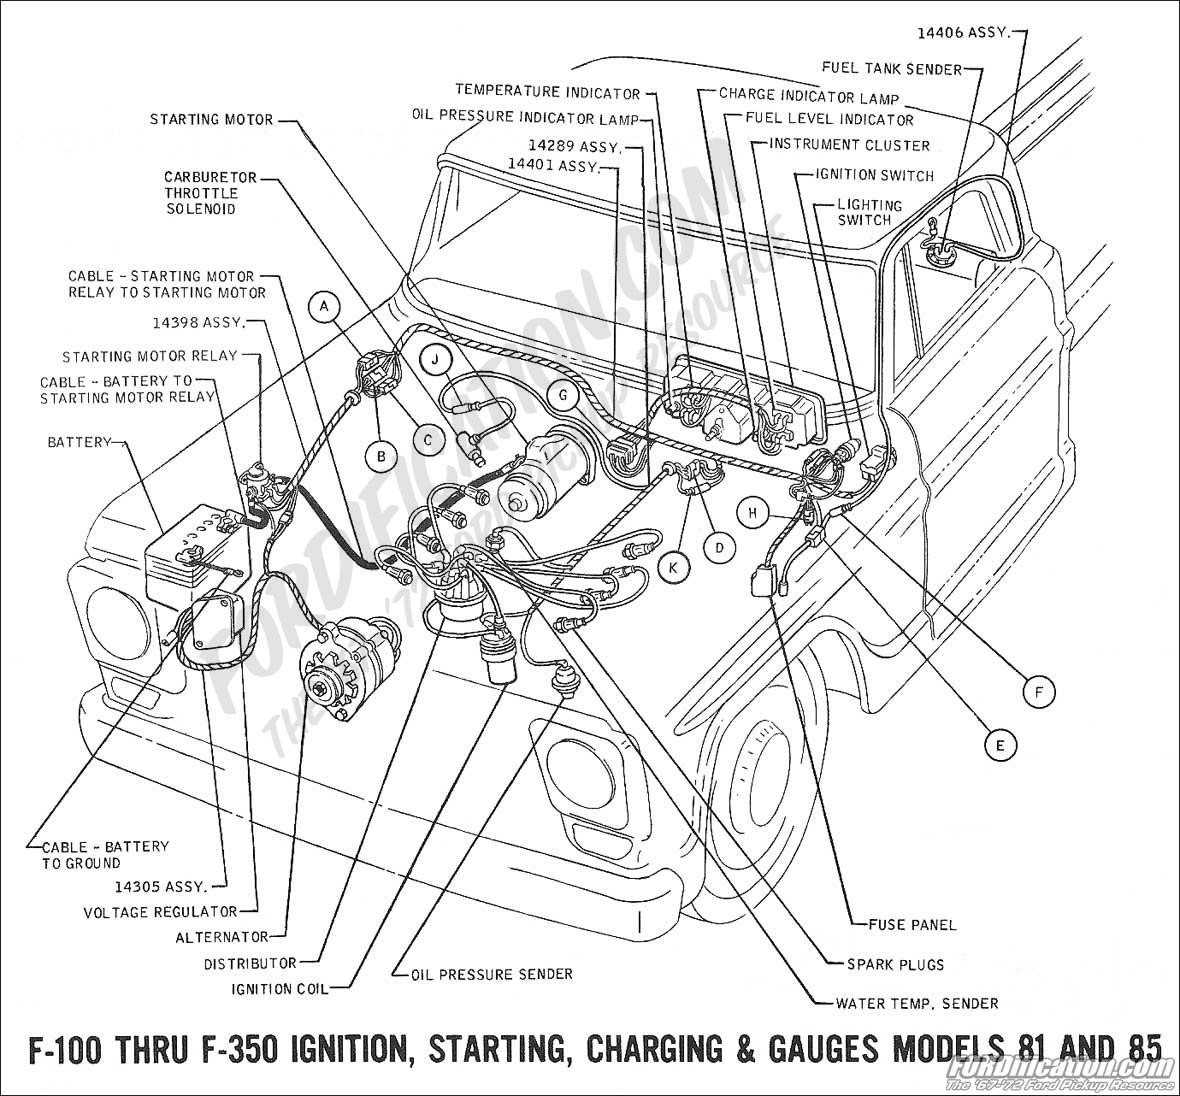 Dana44 furthermore 2010 10 25 004837 Starter With Ford Solenoid Wiring Diagram besides Schematics h moreover 5a7zg 1995 Ford E 150 Van Engine Will Not Turn Over Replaced Solenoid also Drivetrain Noise In Dodge RAM 1500 Pickup. on 99 f350 wiring schematic